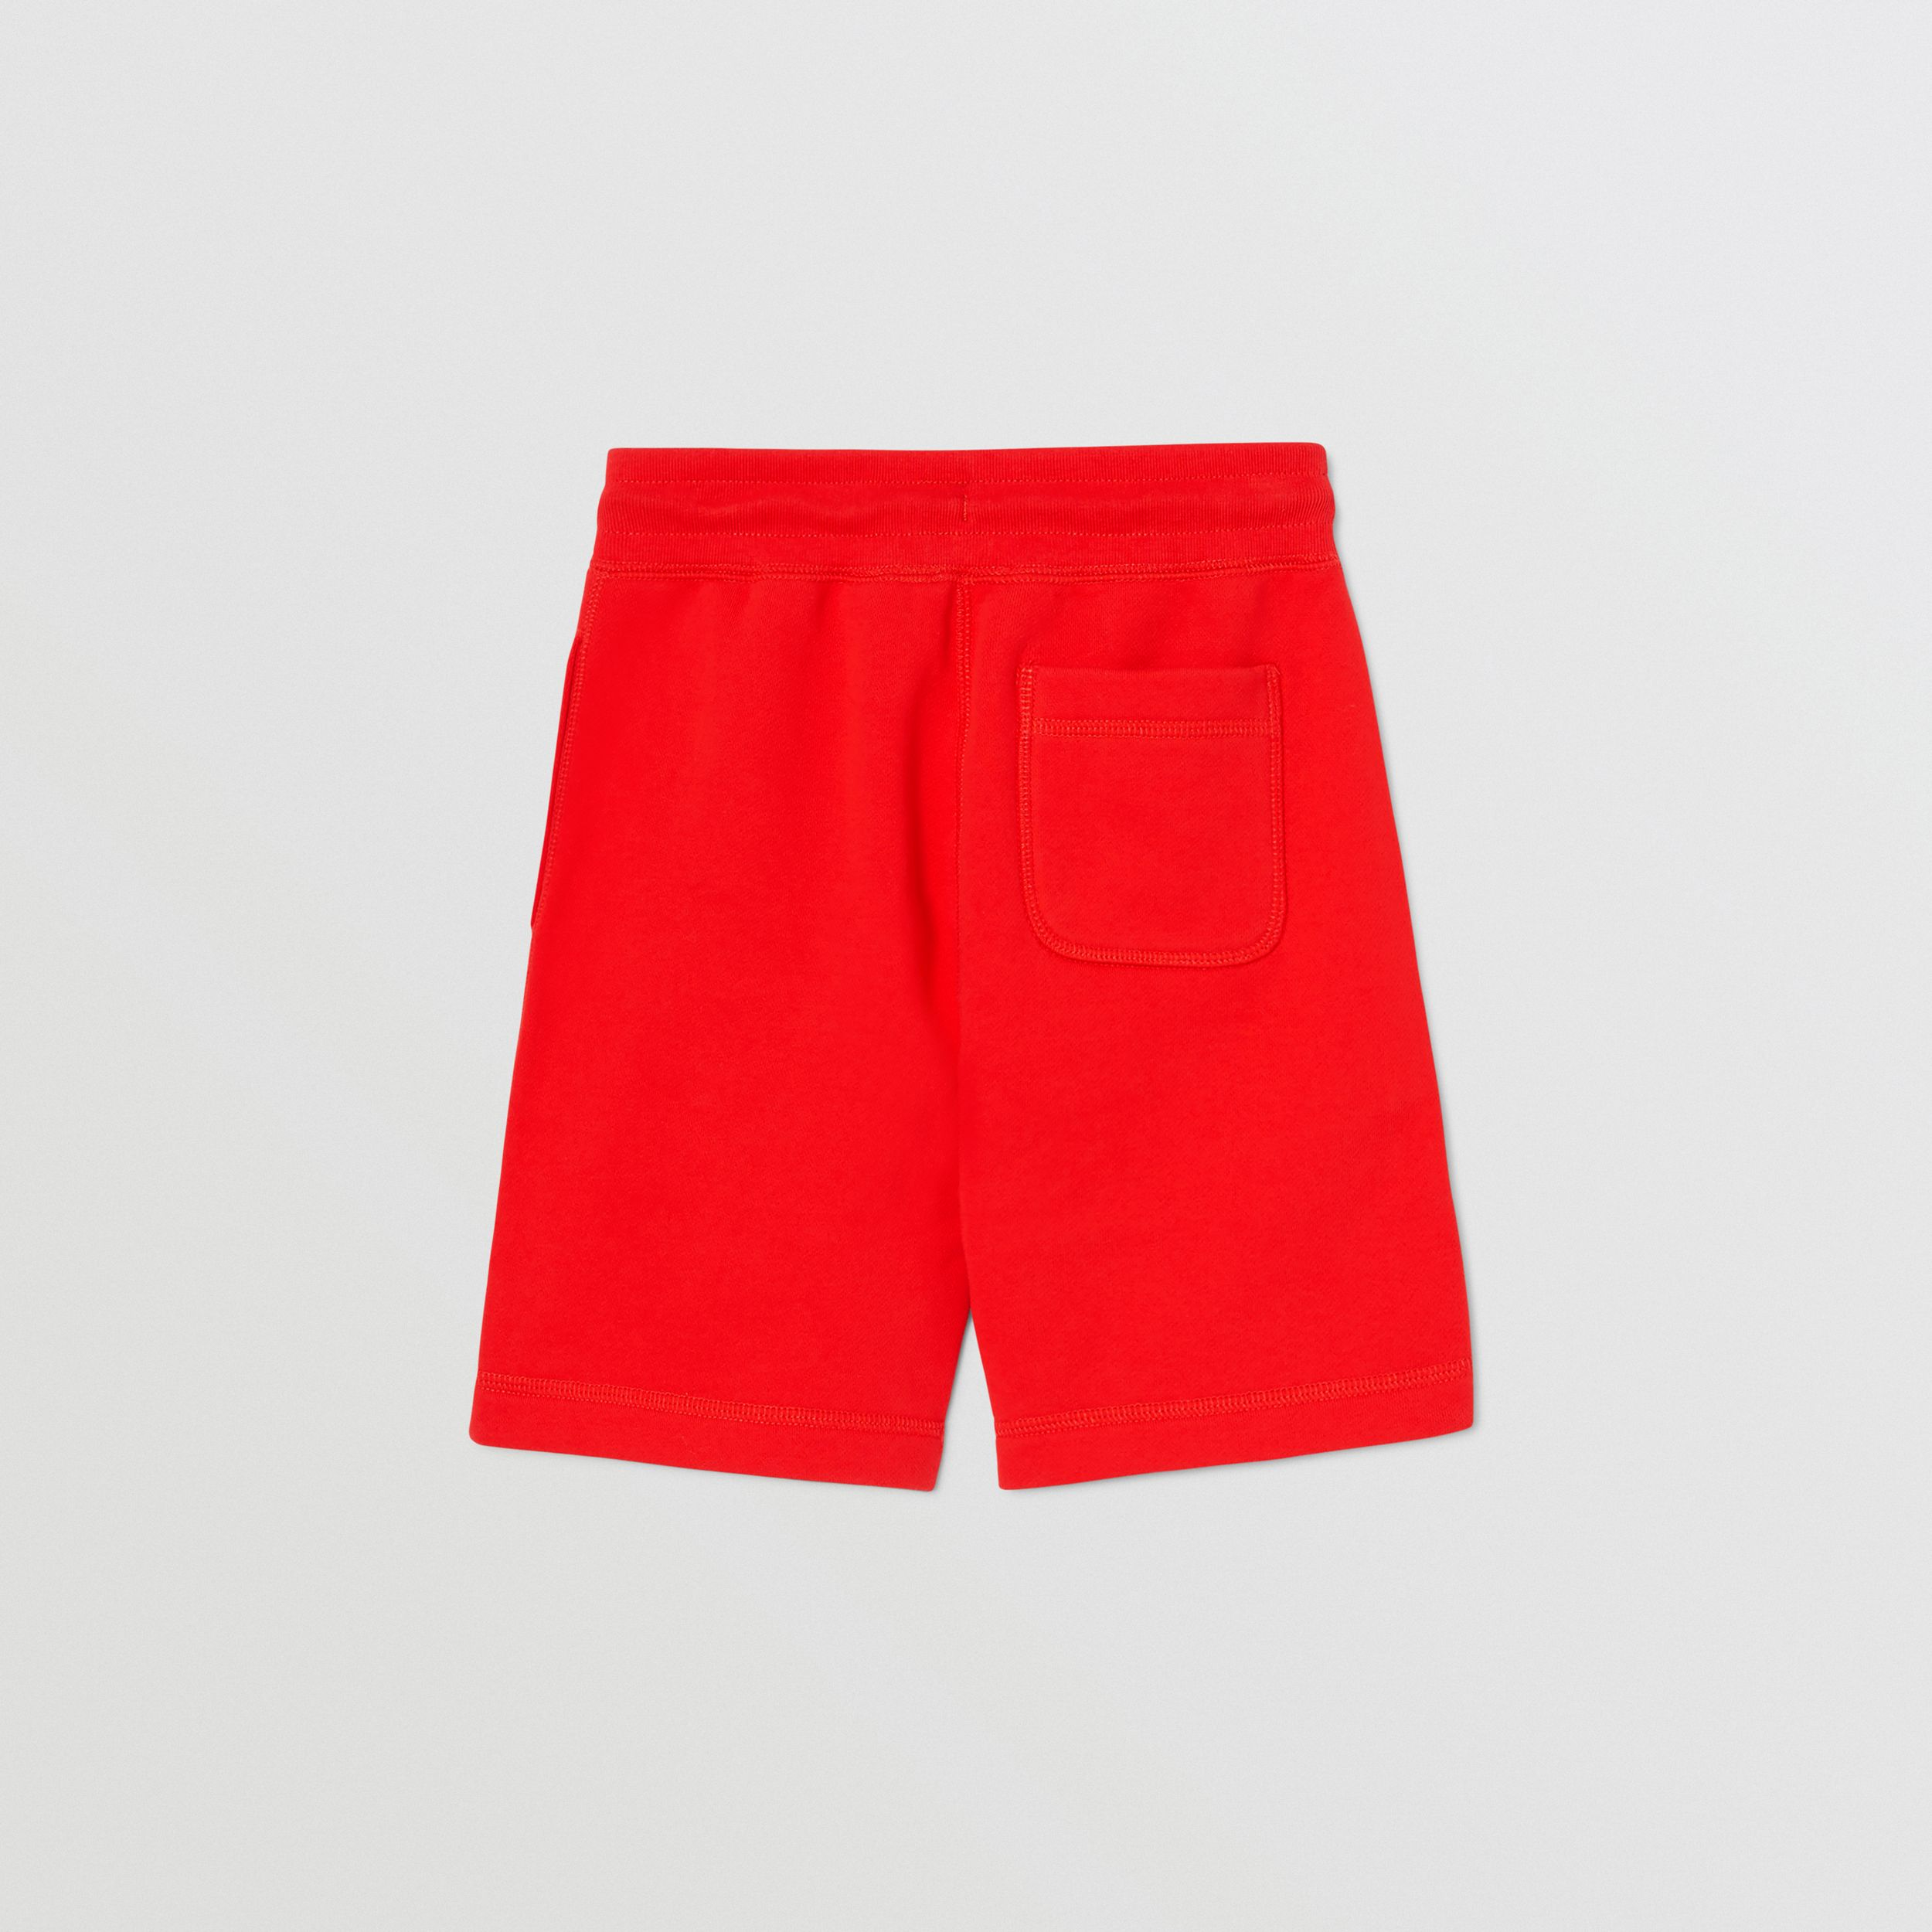 Contrast Logo Graphic Cotton Drawcord Shorts in Bright Red | Burberry - 4